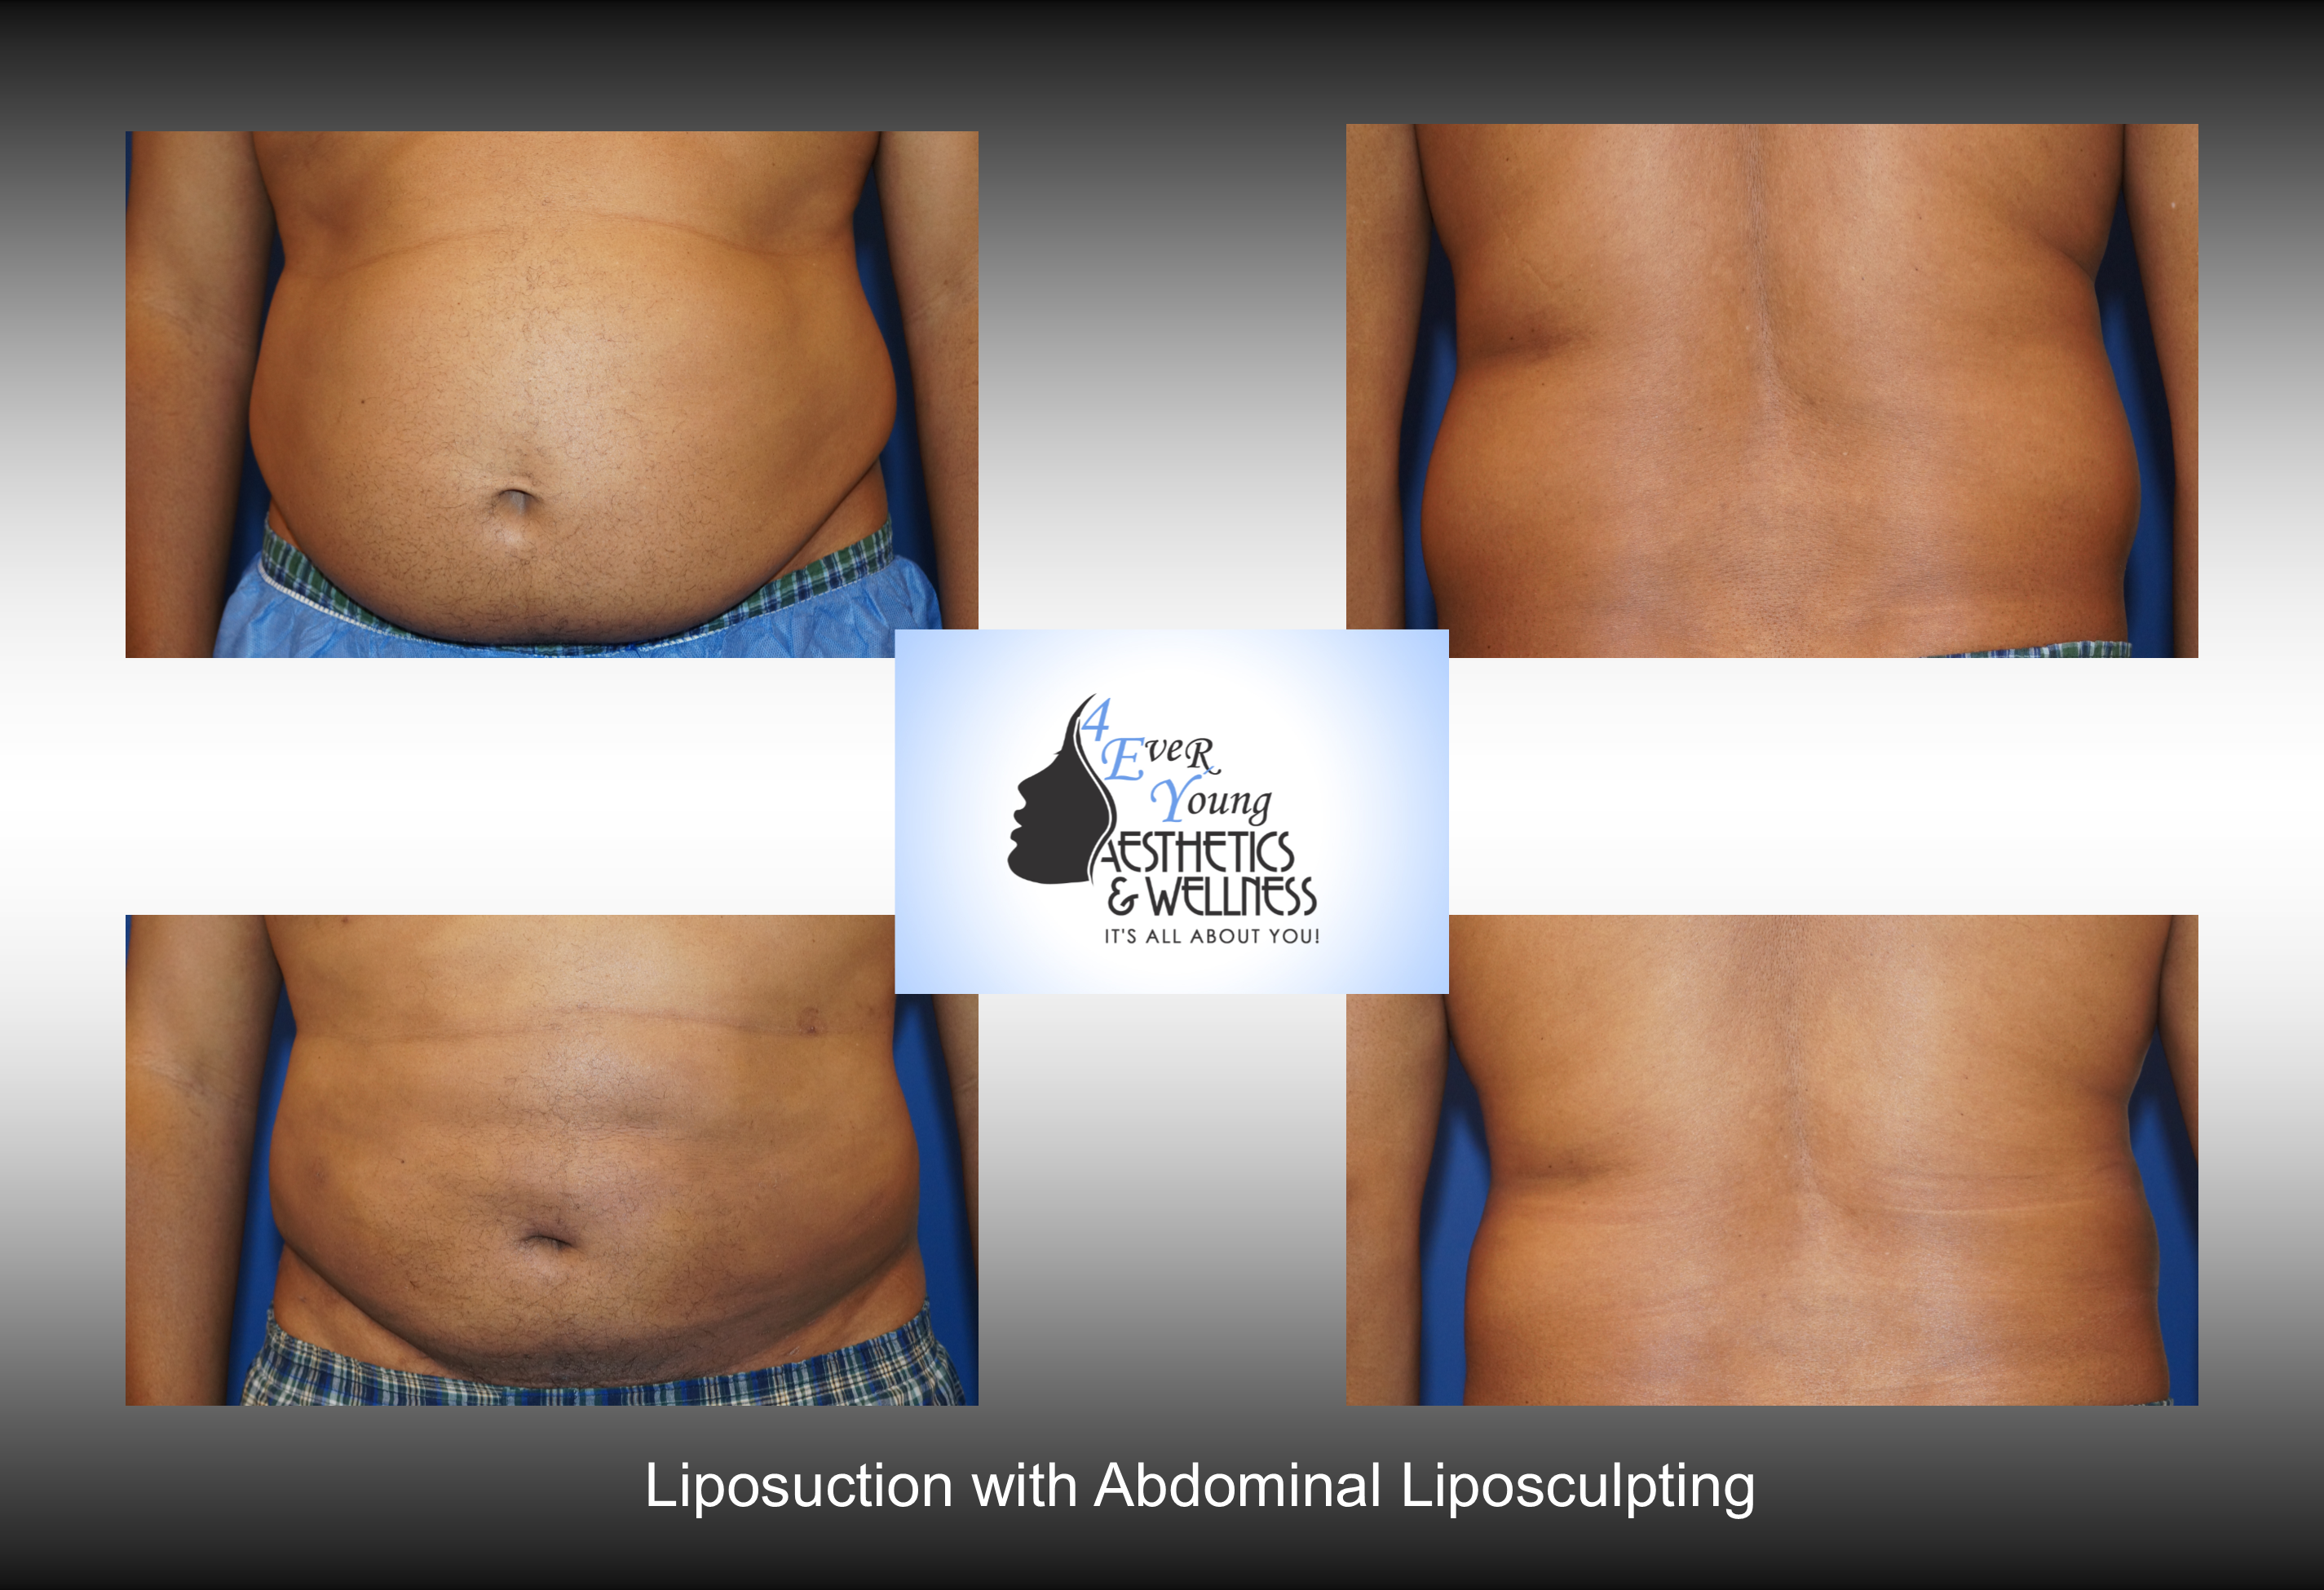 4Ever Young Aesthetics | Liposuction Before/After - 4Ever ...